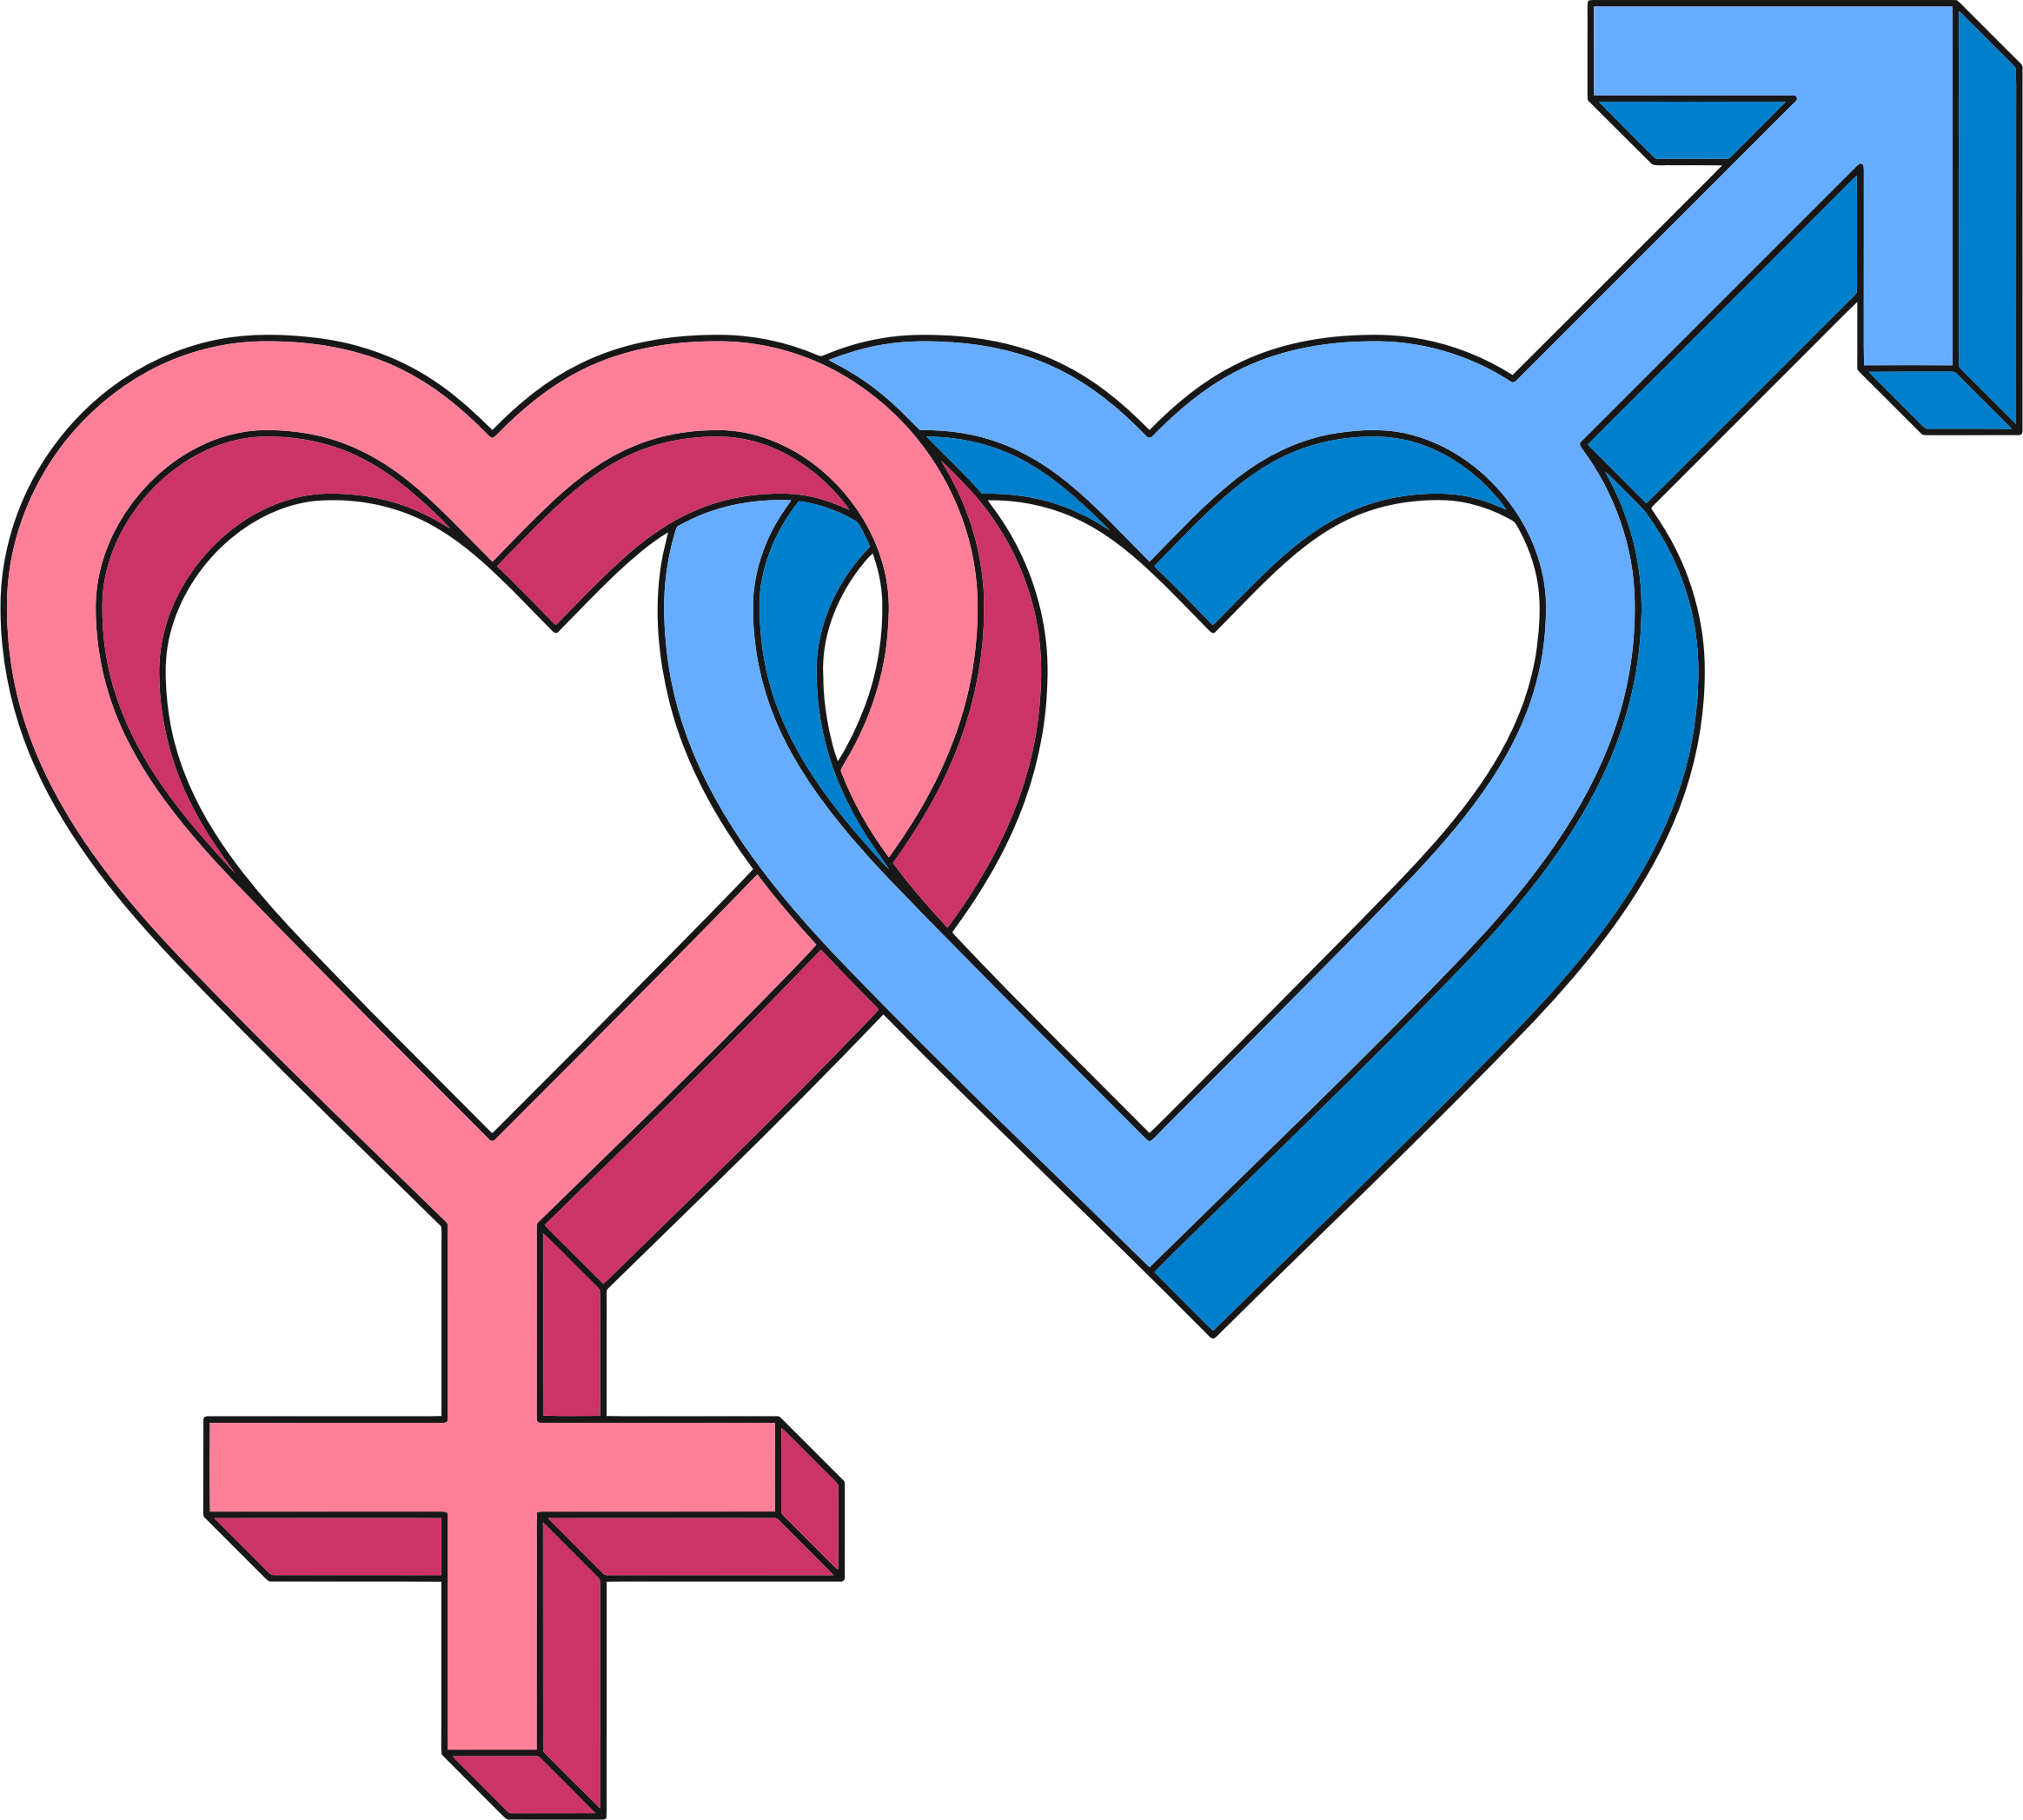 3d Isometric Intertwined Gender Hearts by GDJ